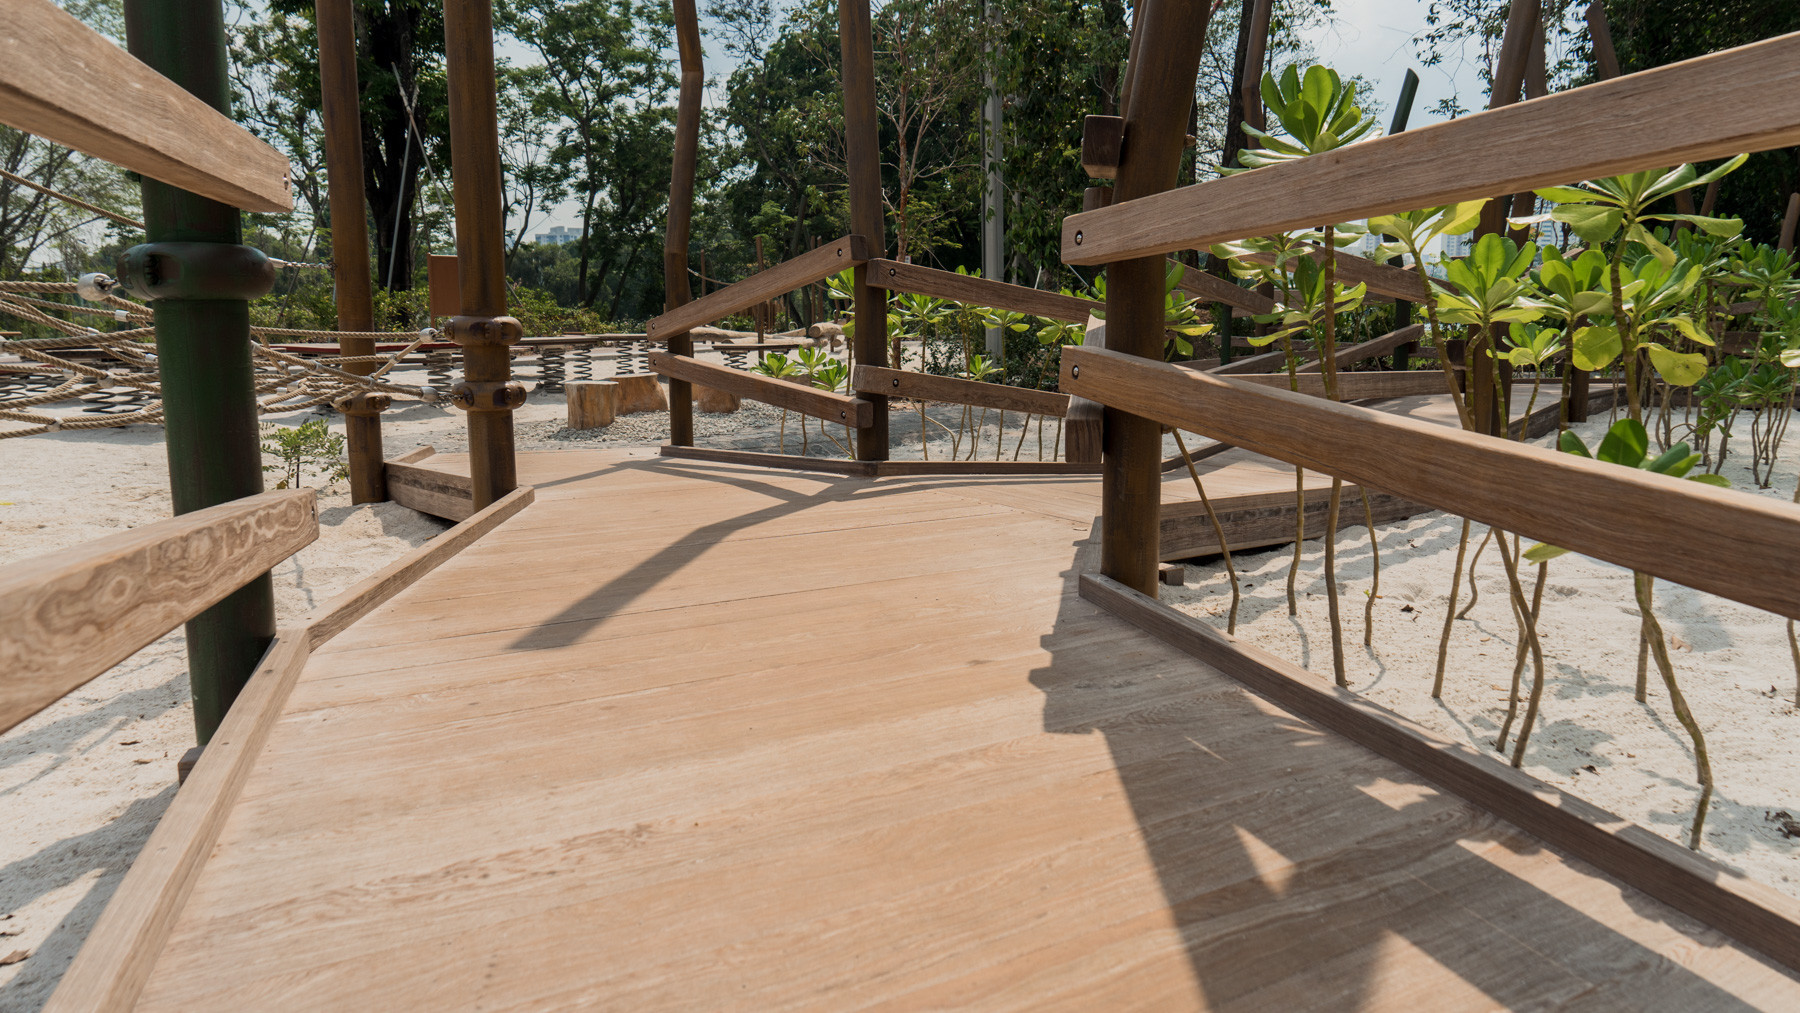 Onewood Decking Platform Children Playground